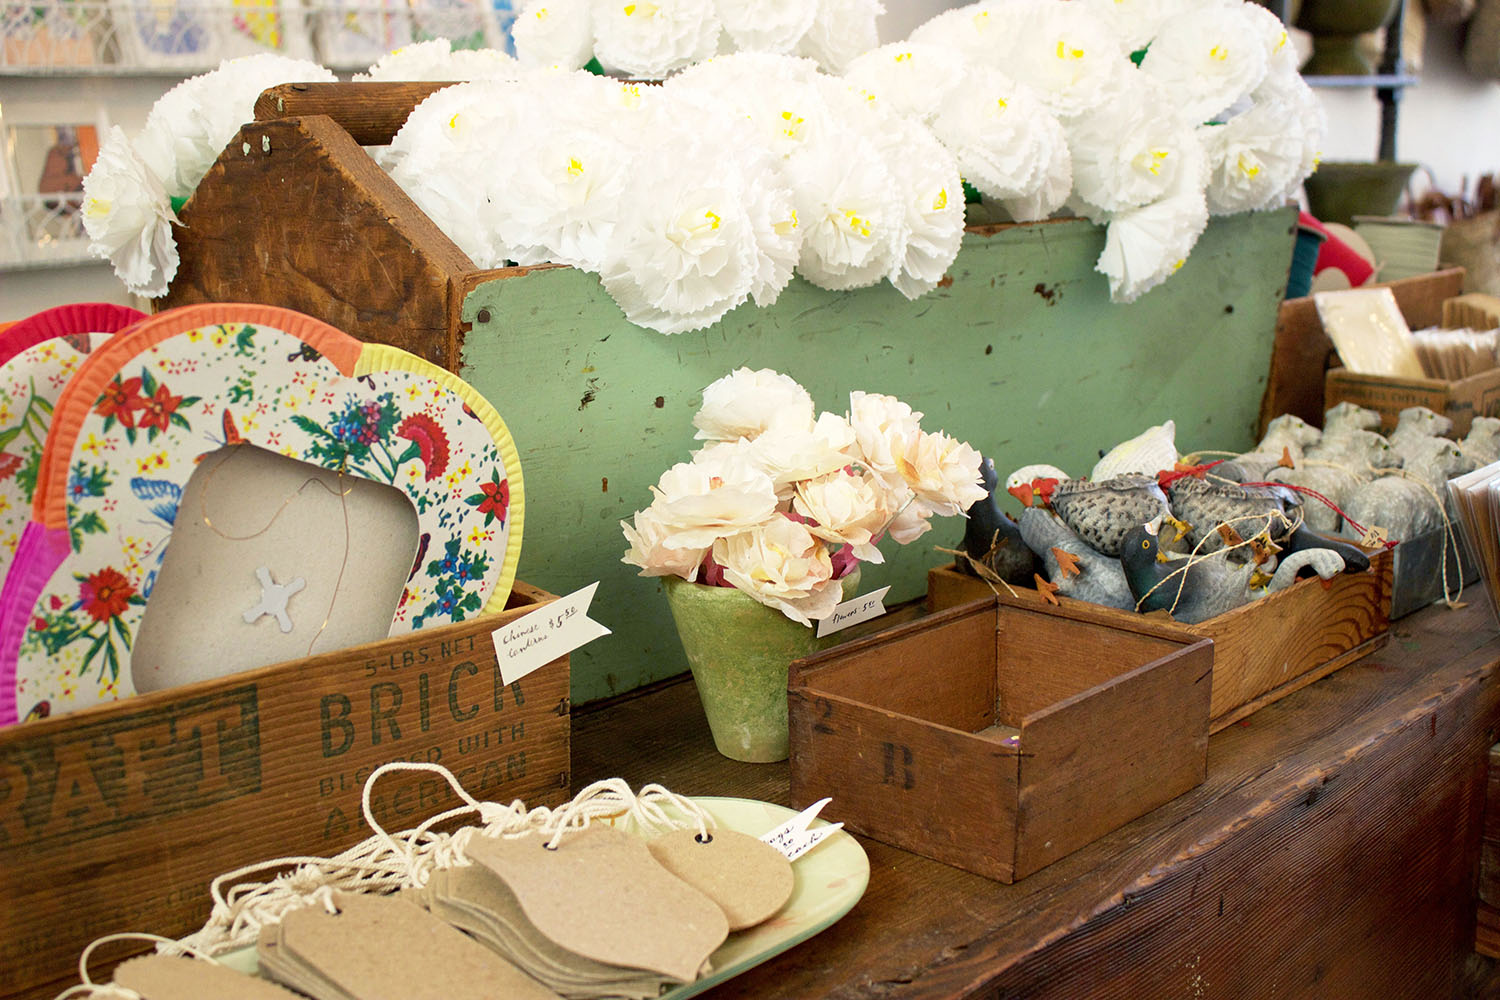 With a wide array of irresistible trinkets, like these paper lanterns and flowers, Bon has something for everyone.